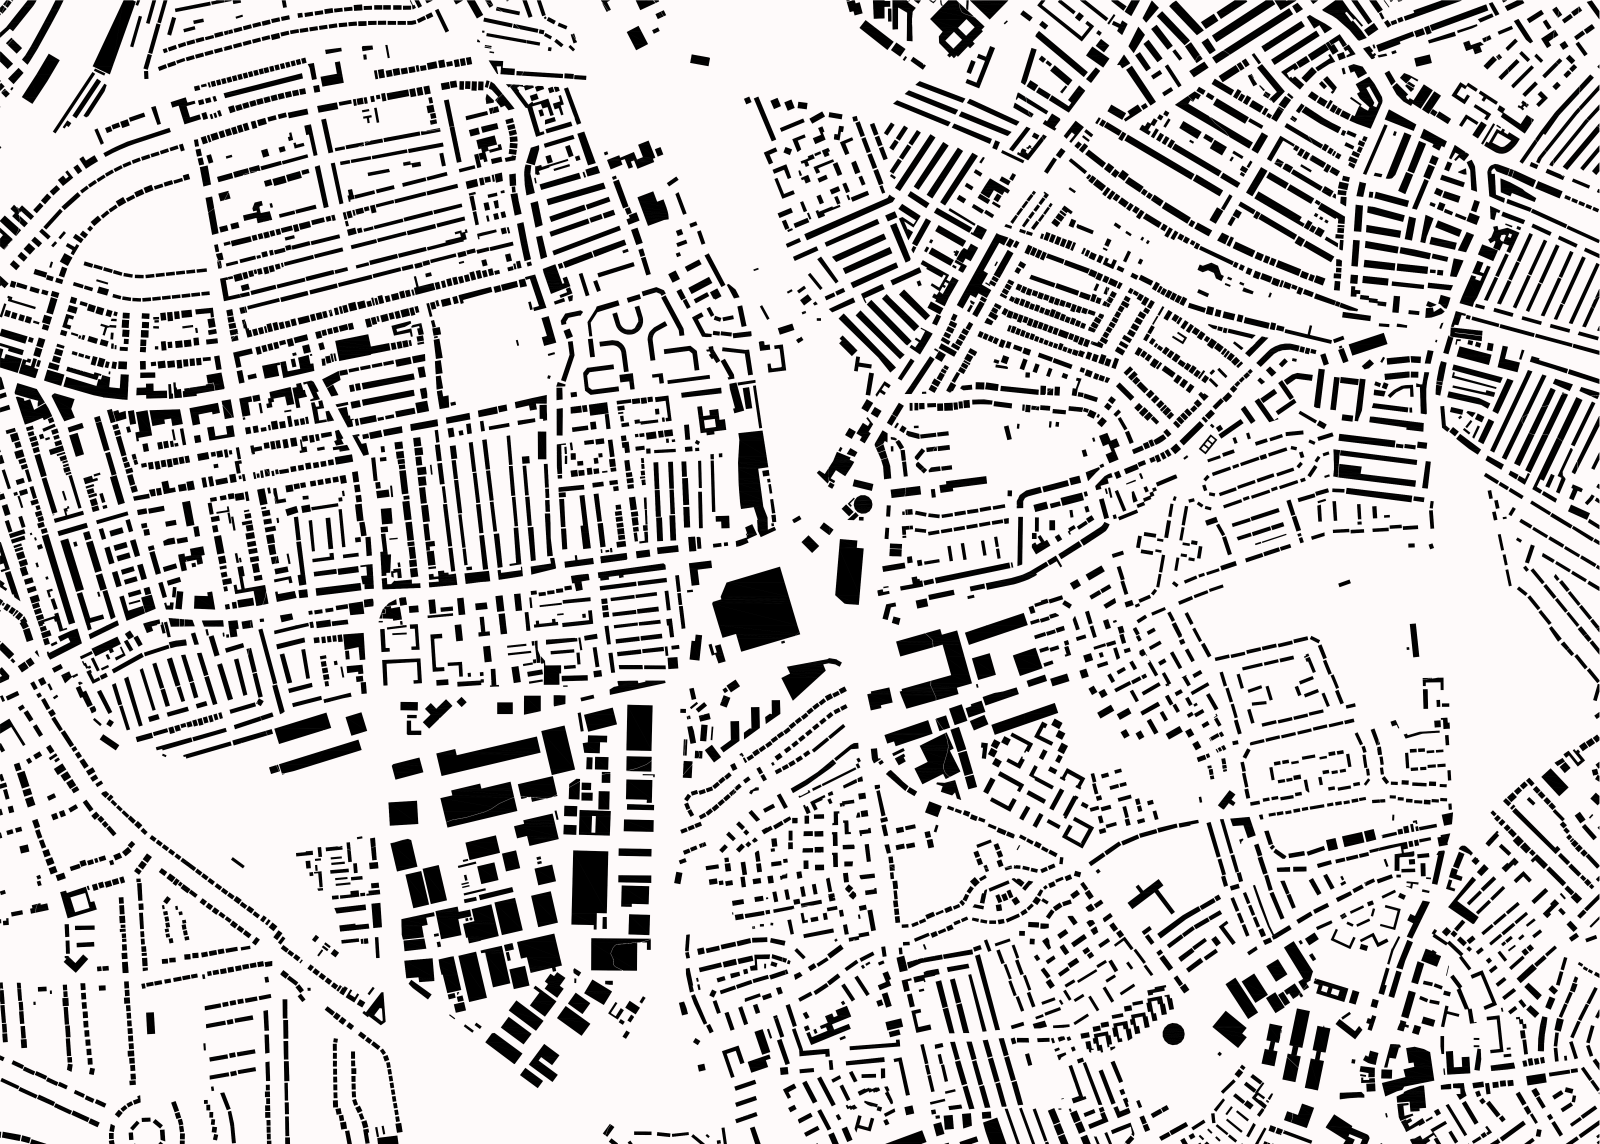 Study Site:Colliers Wood - Urban Mapping -